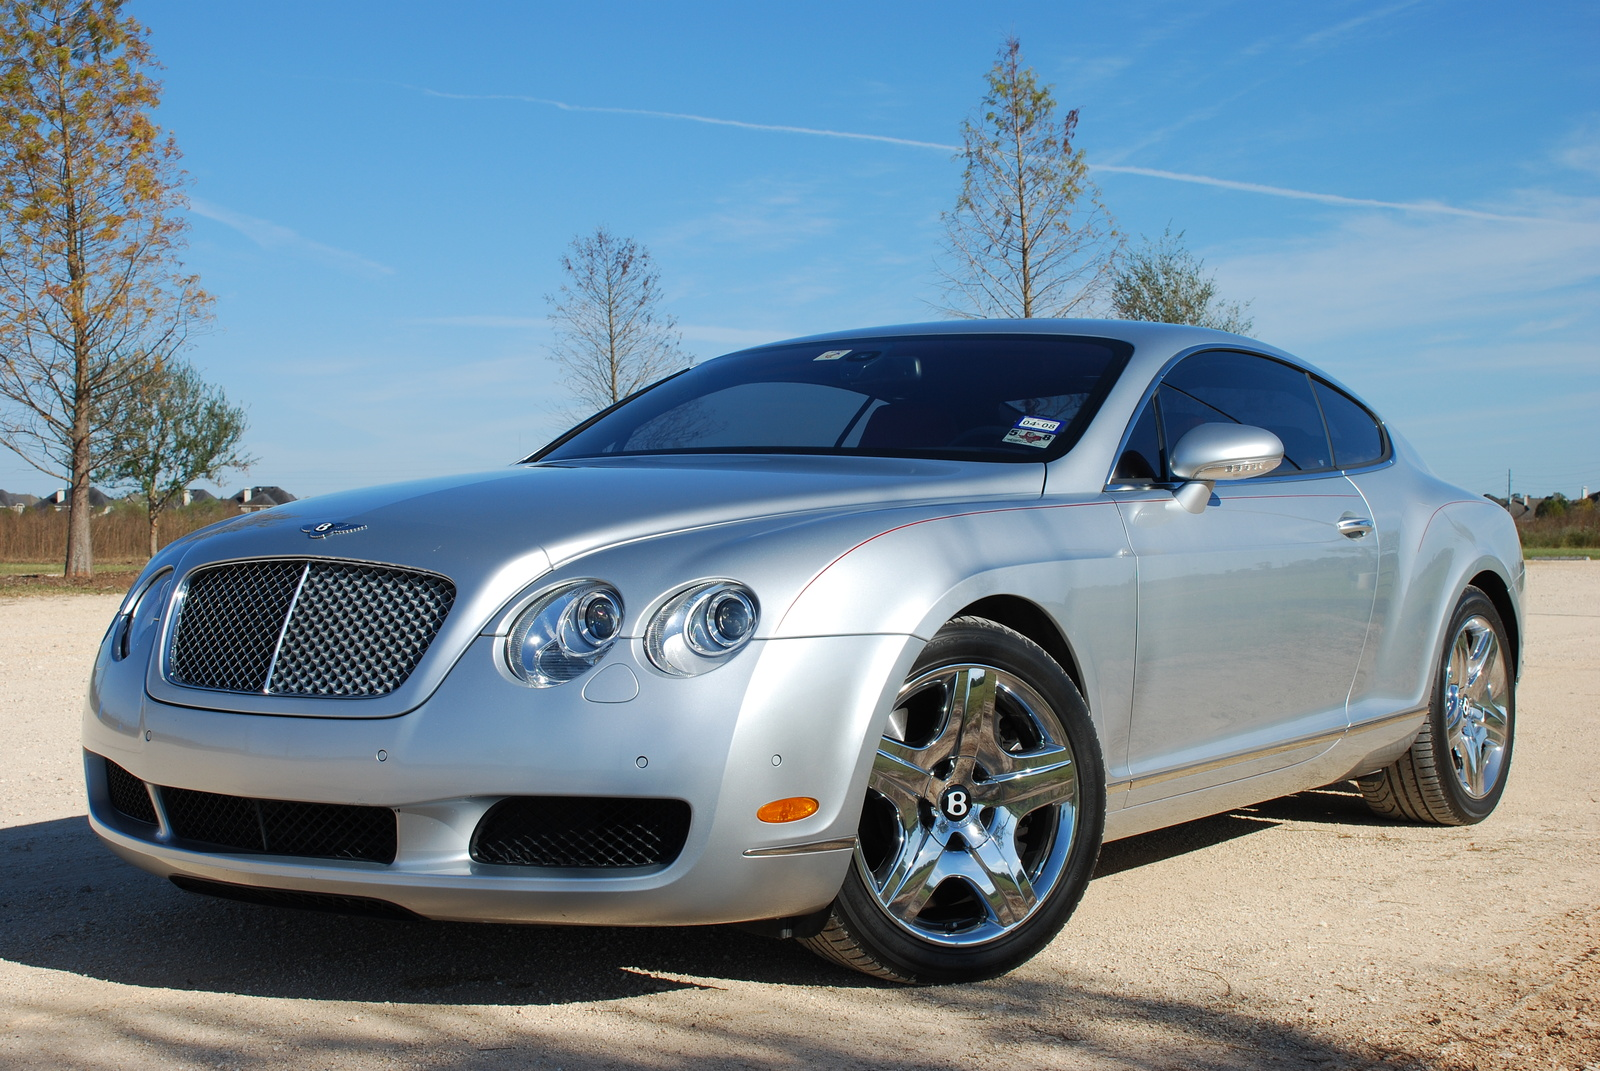 2007 Bentley Continental GT - Pictures - 2006 Bentley Continental GT ...